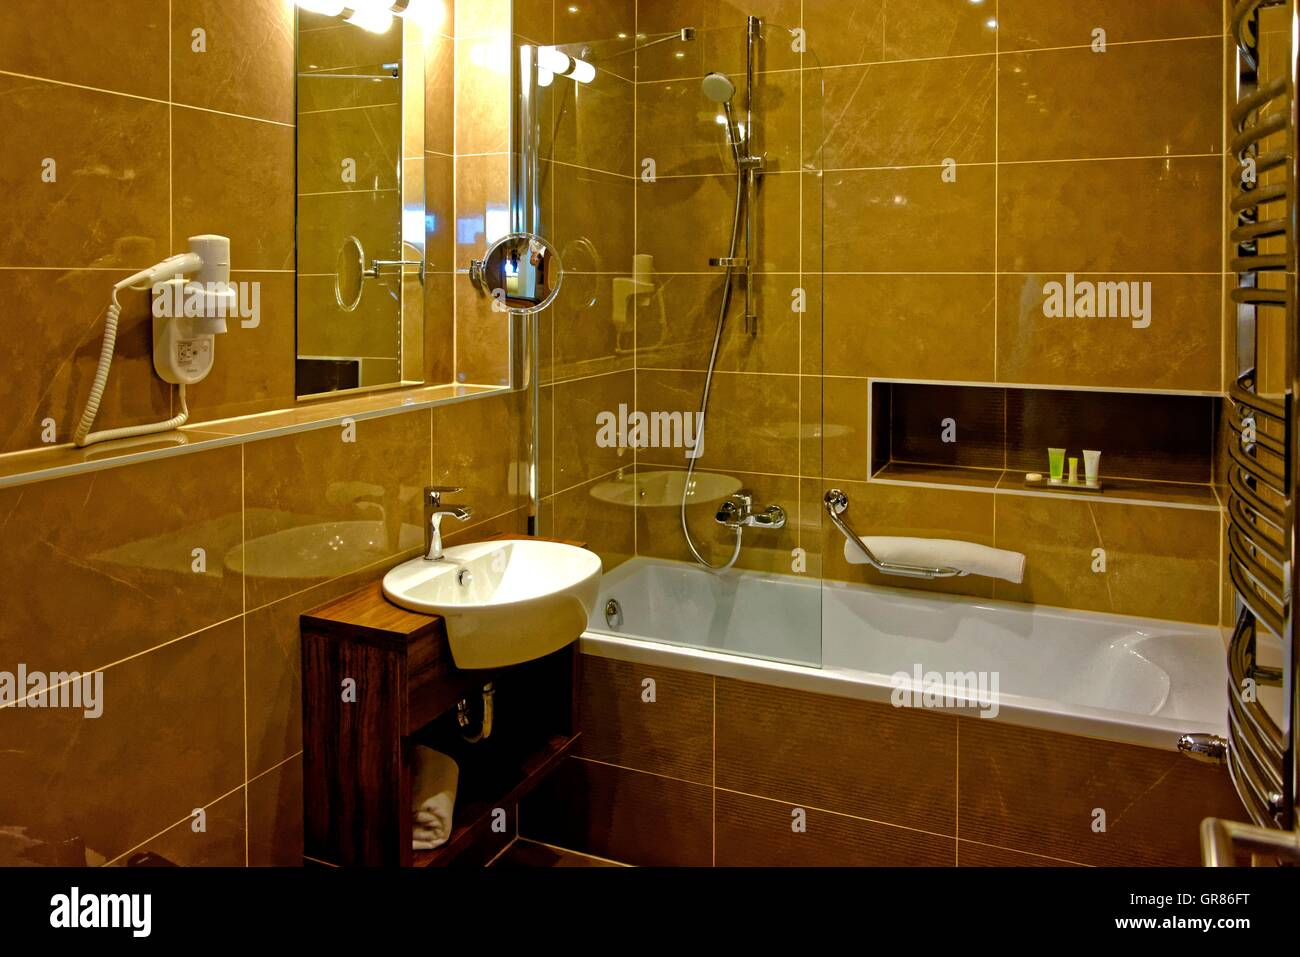 Page 2 Mirror Tiles High Resolution Stock Photography And Images Alamy